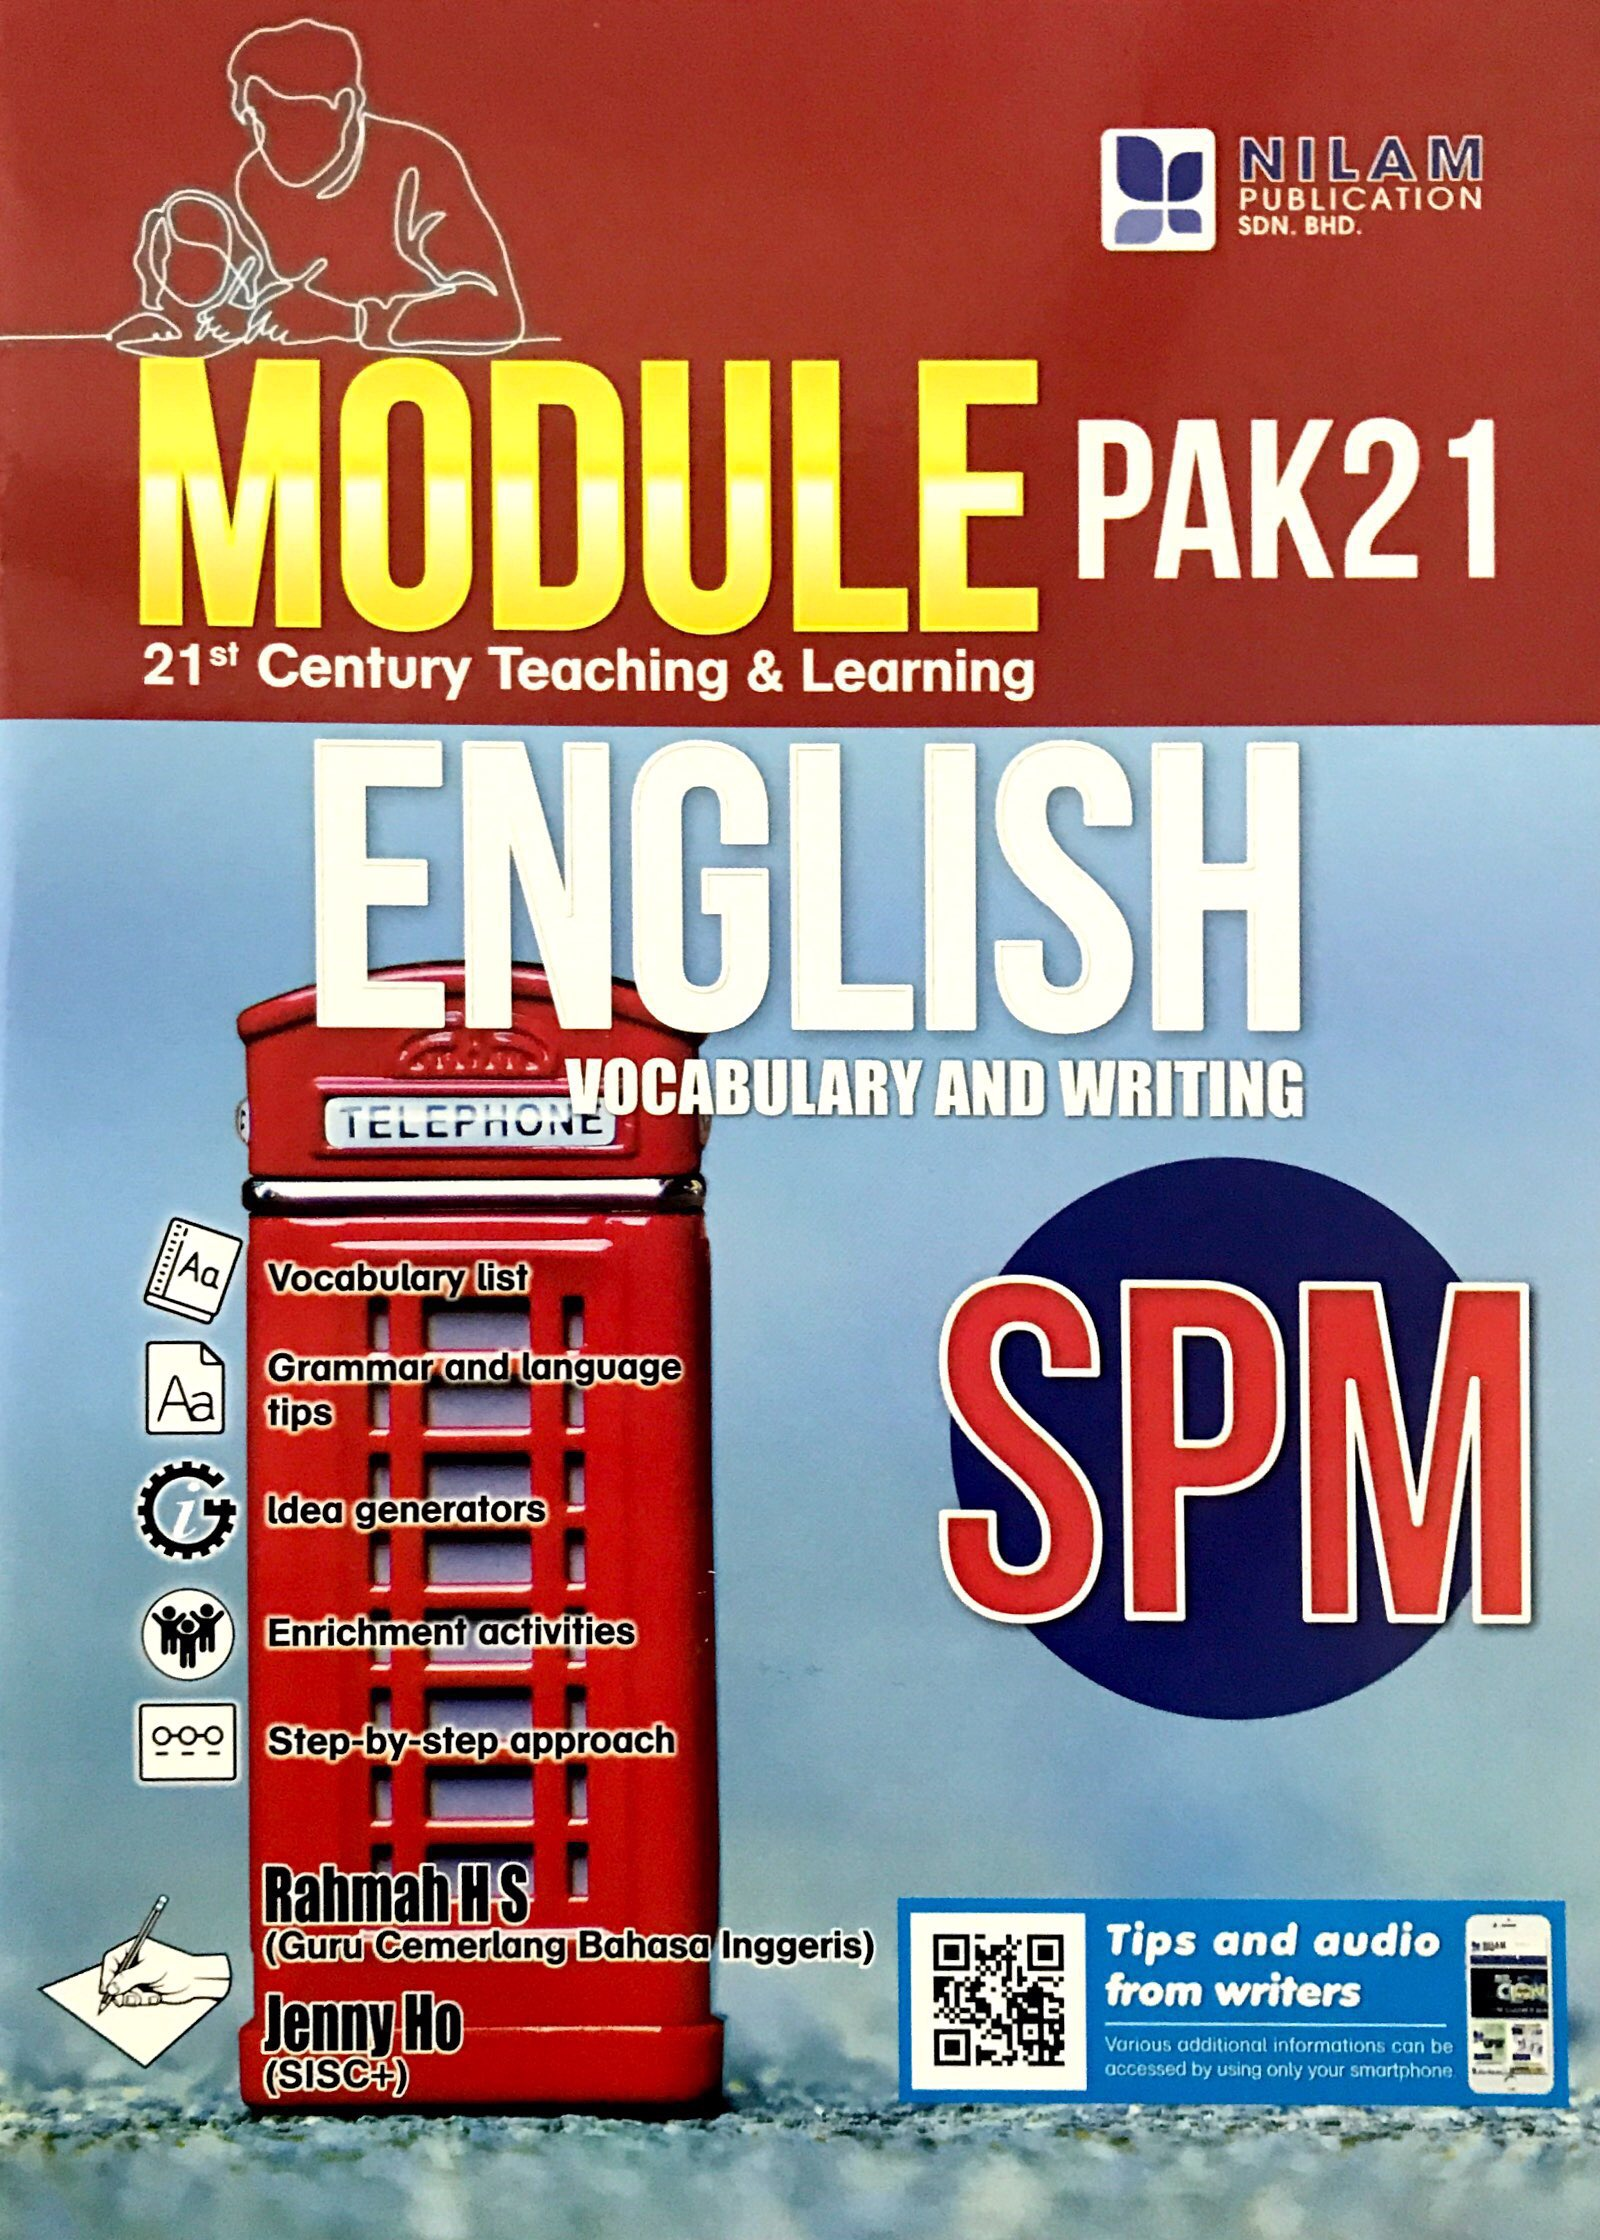 Modul Pembelajaran & Pengajaran Abad Ke-21 Edisi 2019 English Vocabulary and Writing